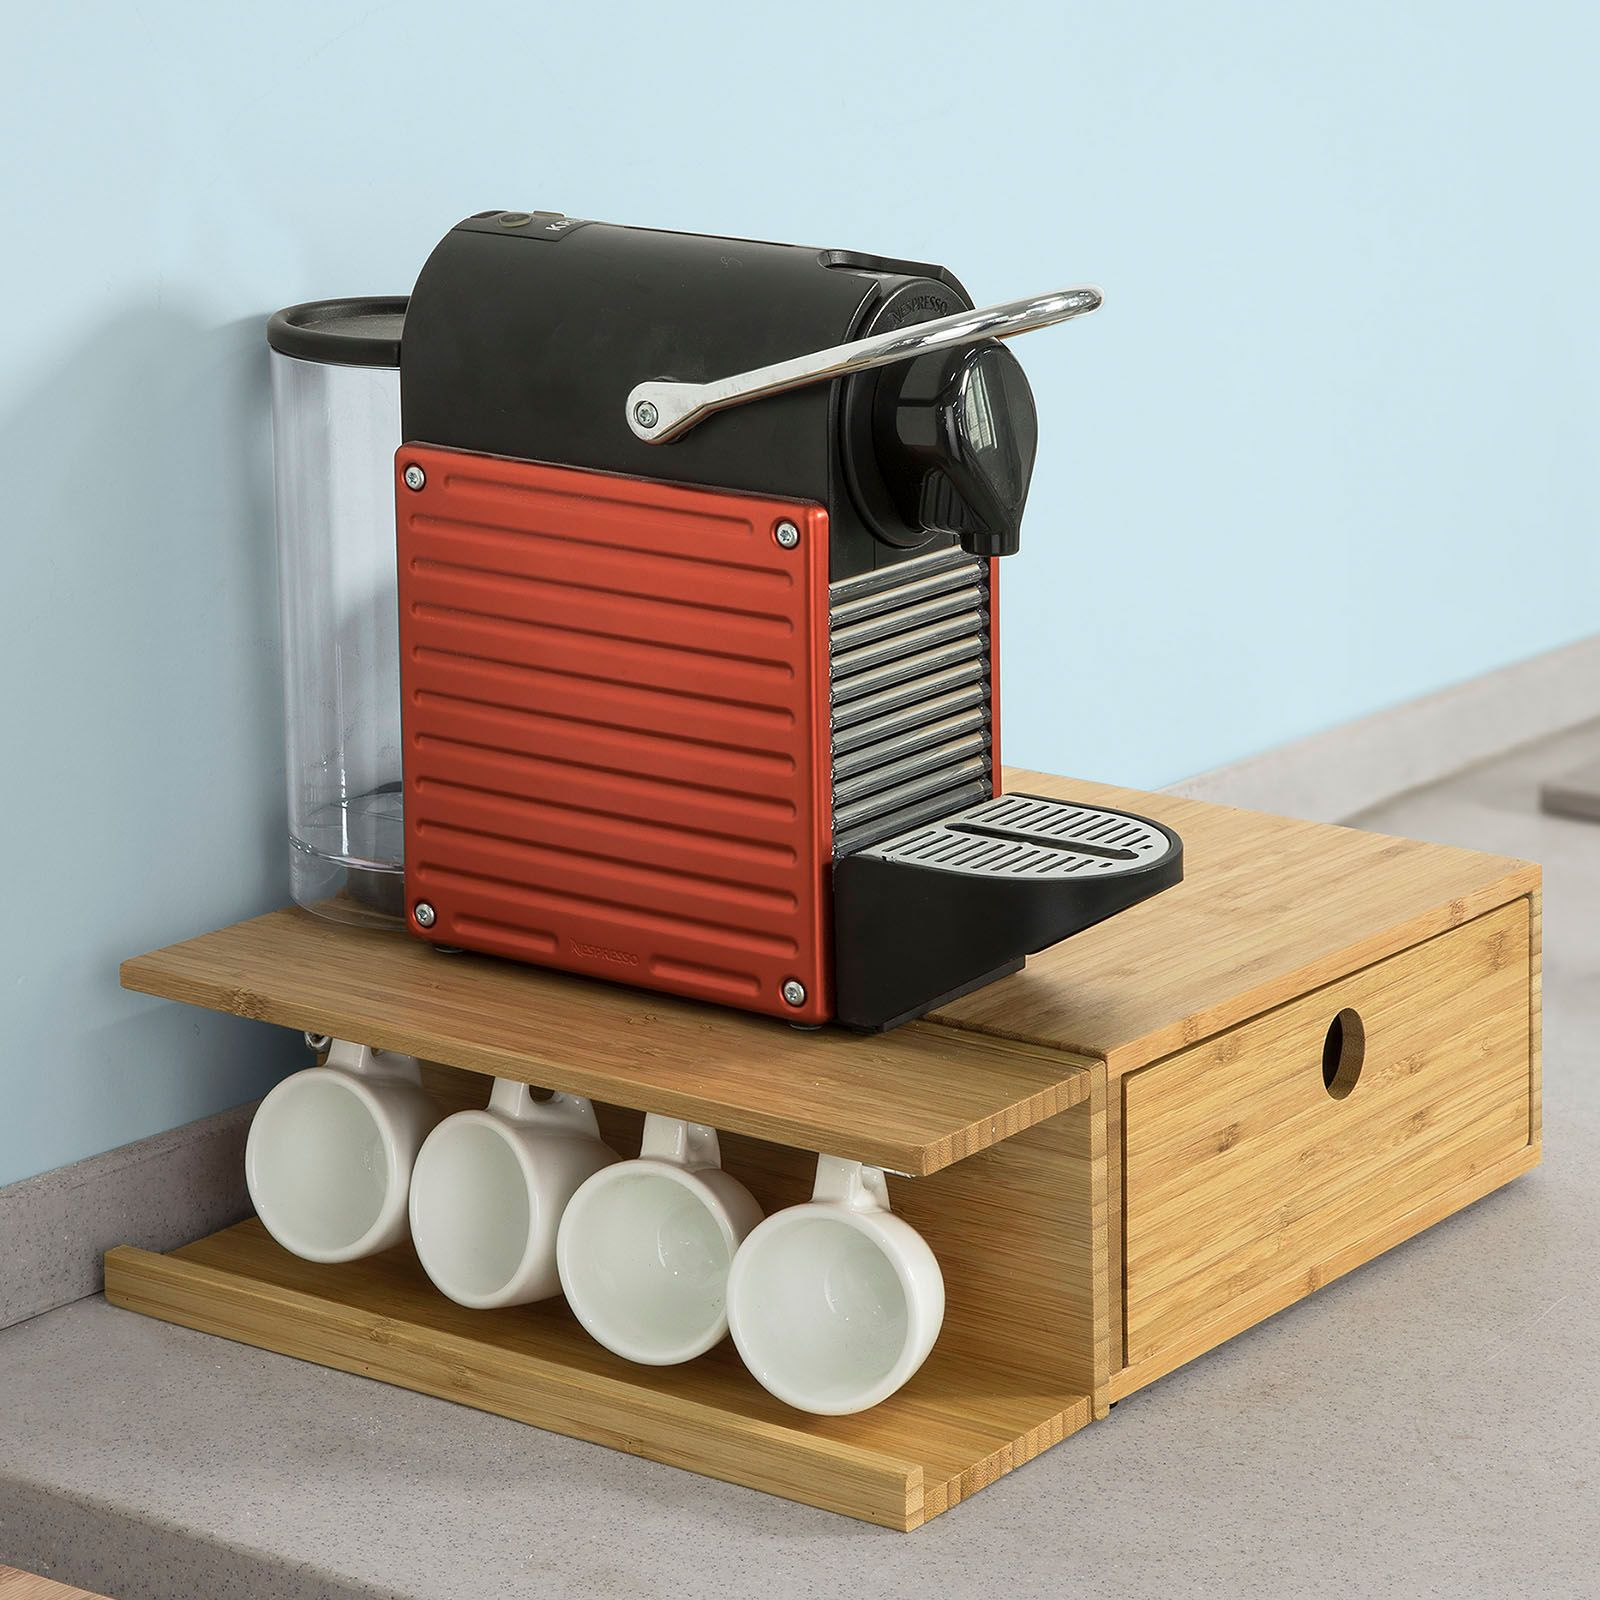 Coffee Capsule Holder Hack Kitchen Storage Hacks Coffee Capsule Holder Coffee Capsules